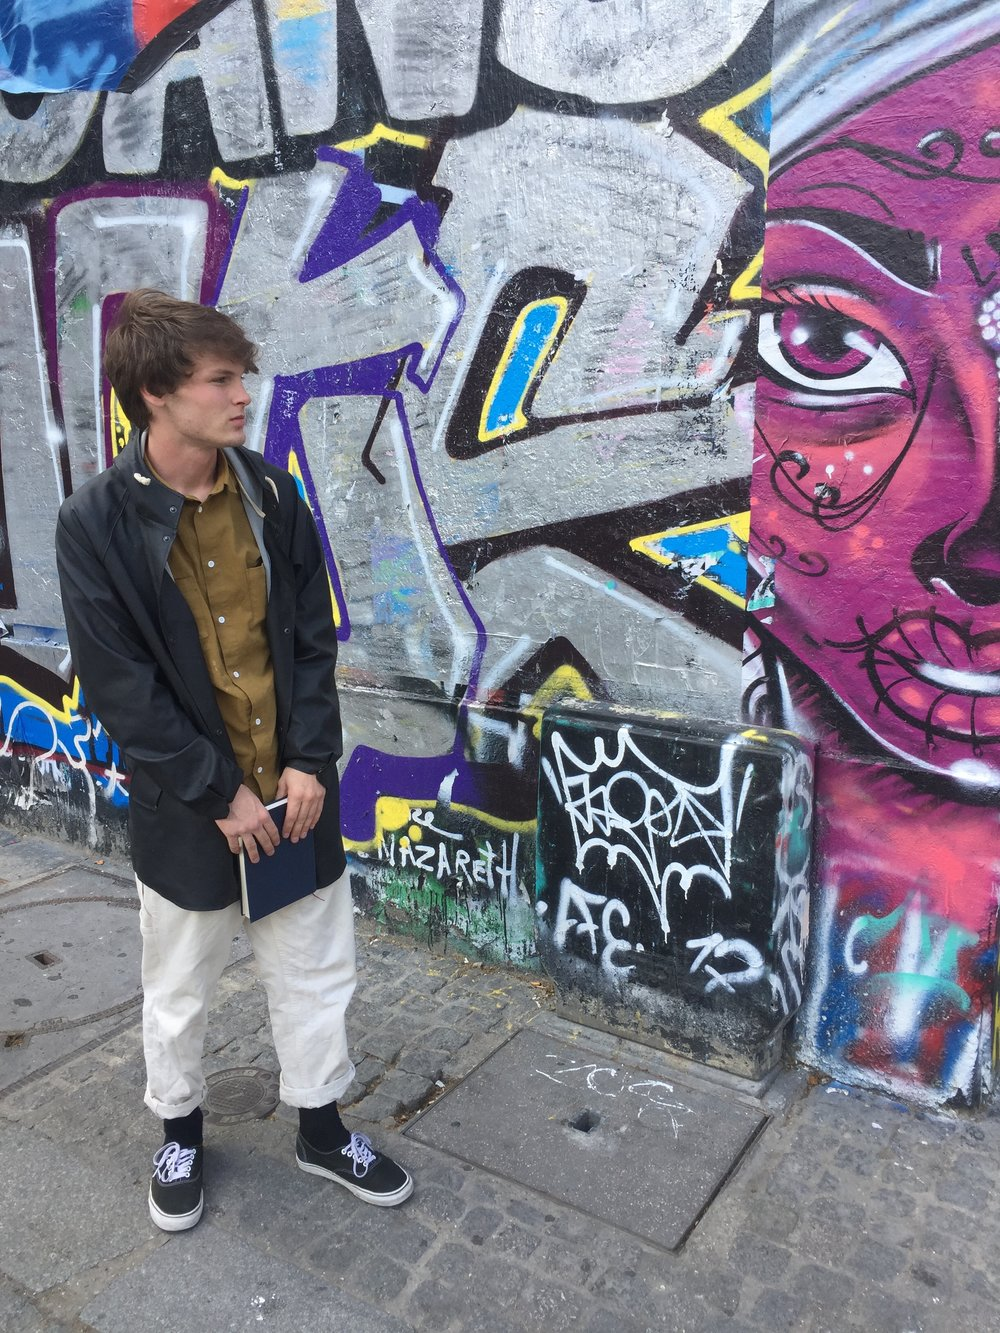 Lukas immersed in the street art and urban vibe of Paris.